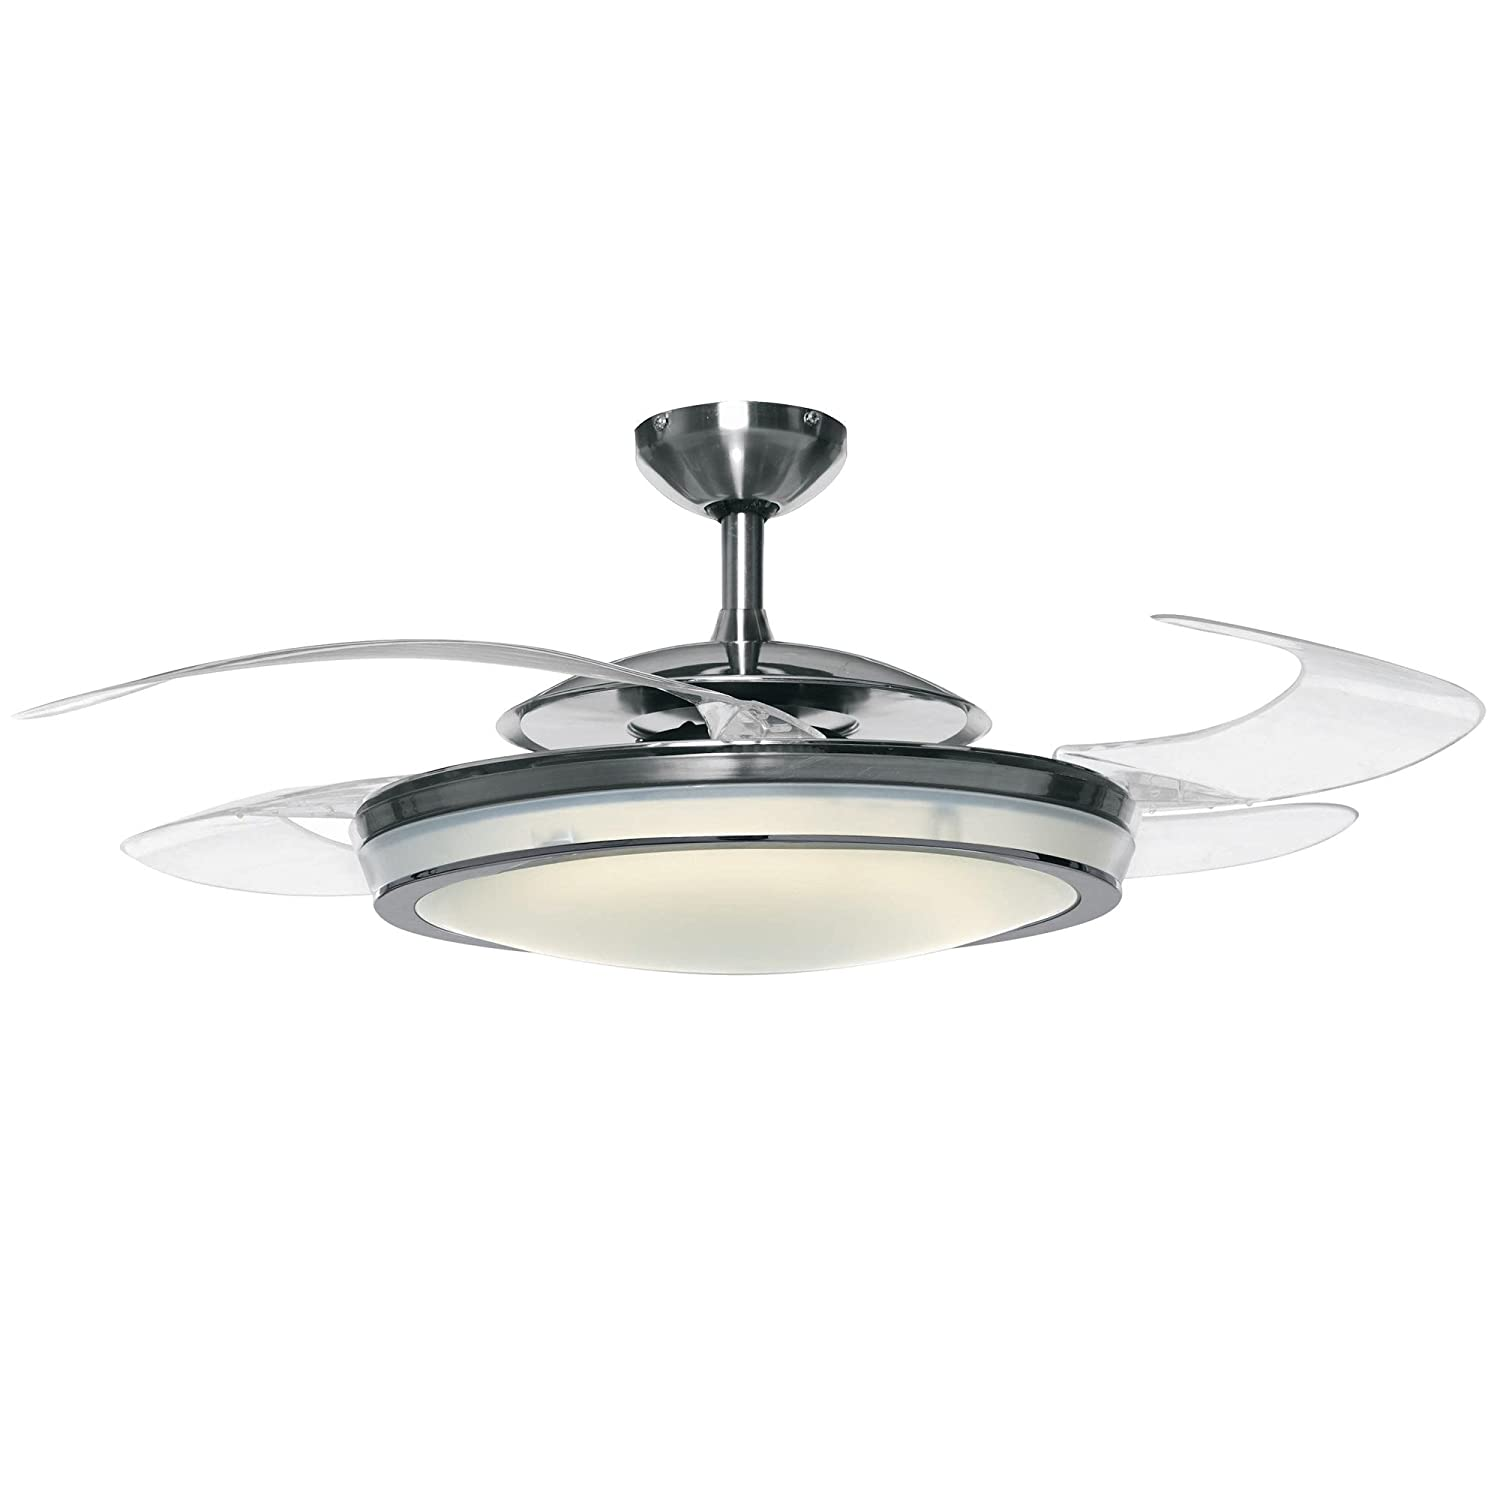 light control lighting p steel remote viper fantasia led asp stainless ceiling fan